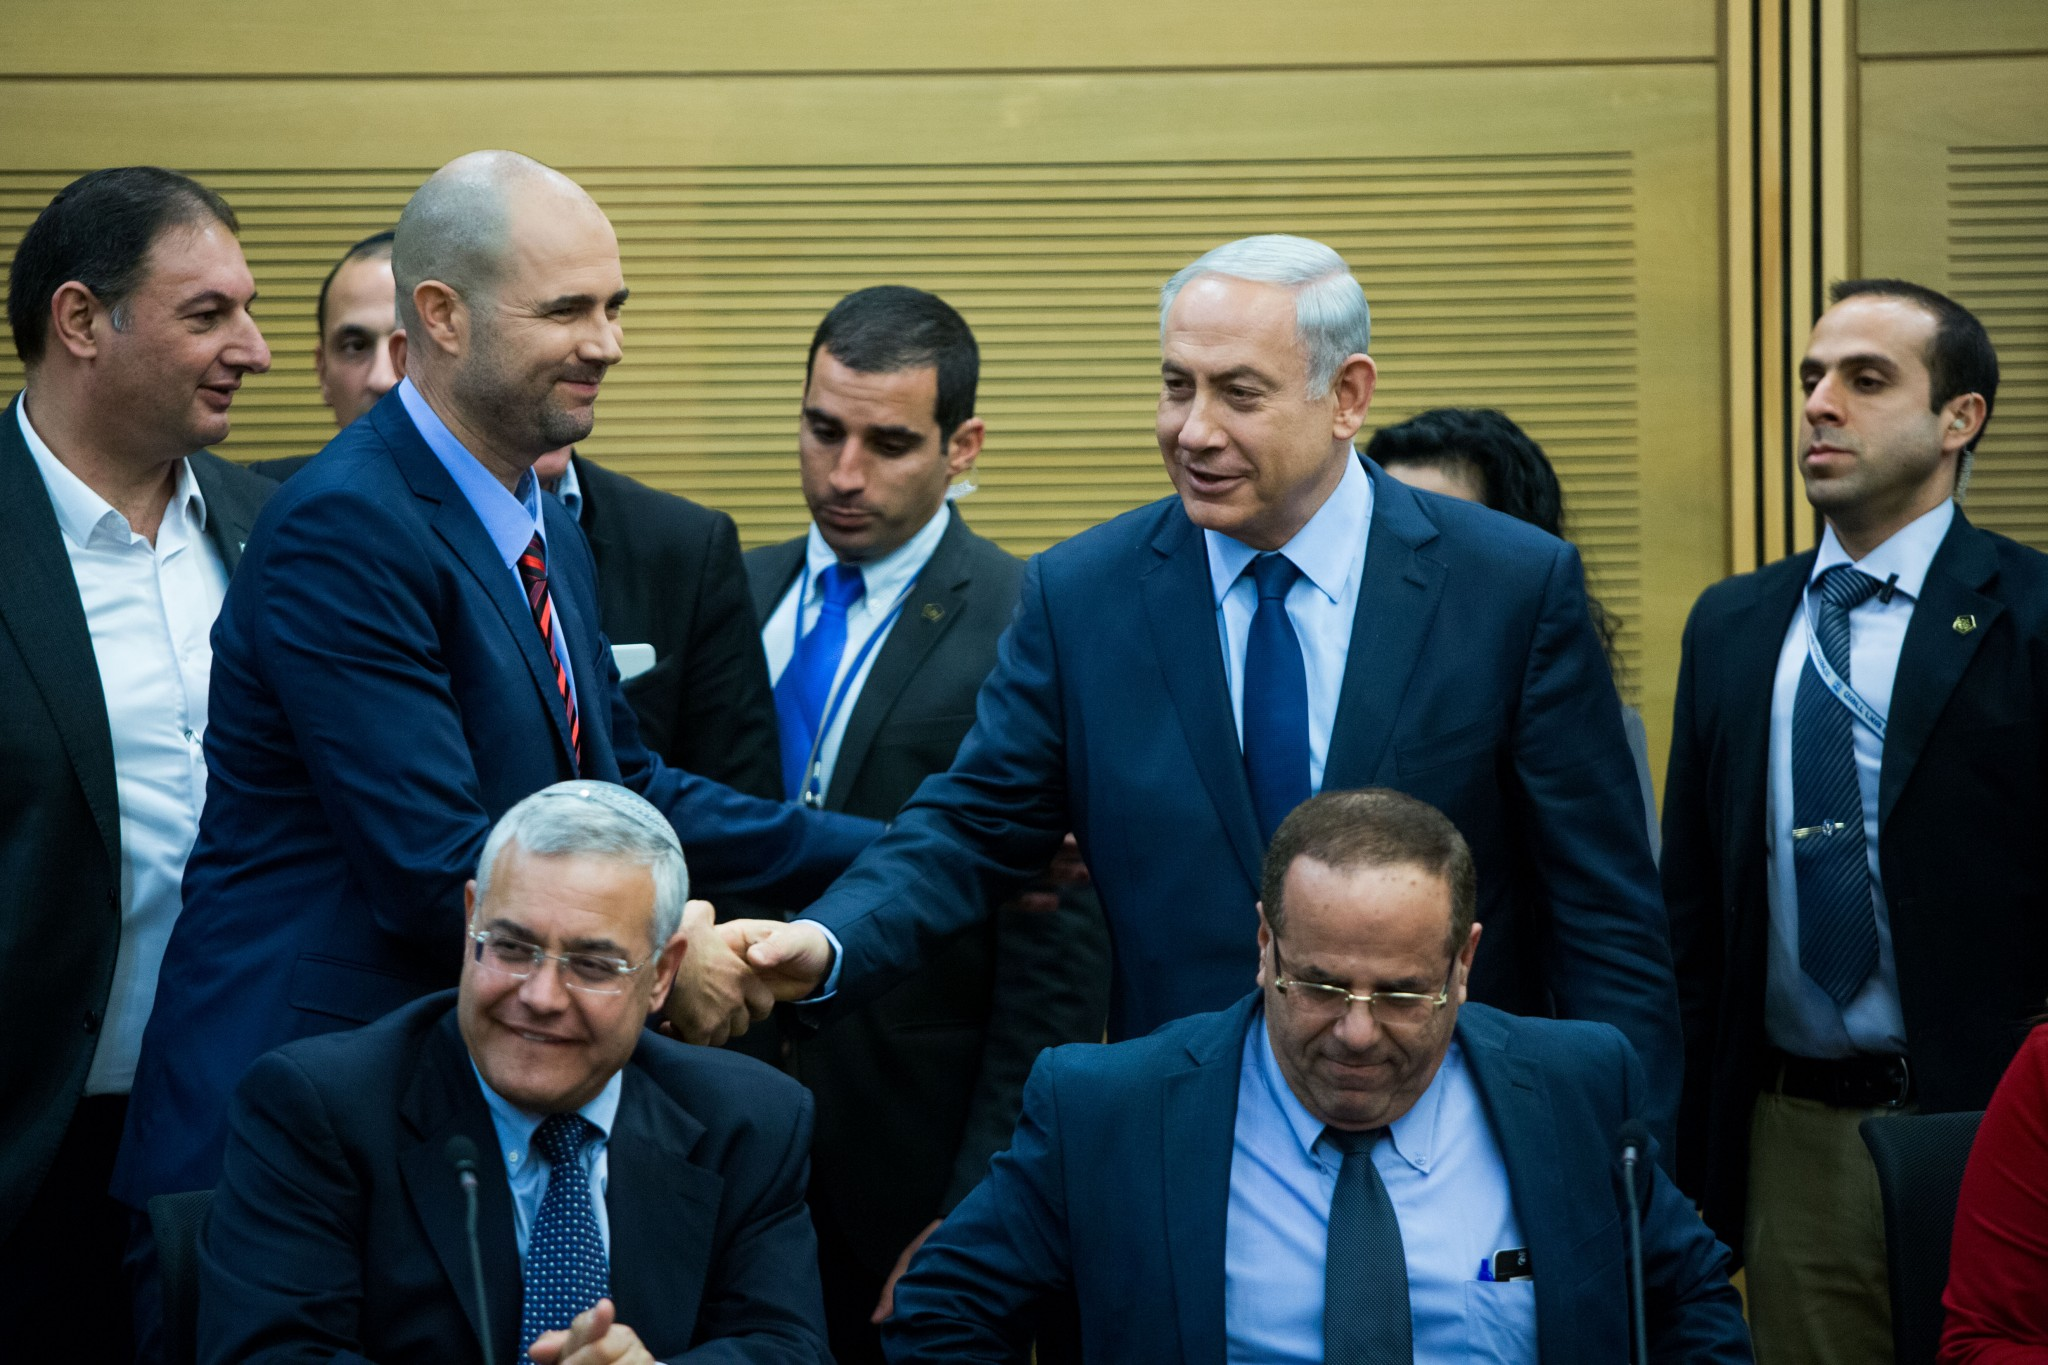 Prime Minister Benjamin Netanyahu shakes hands with new Likud MK Amir Ohana during a party faction meeting at the Knesset. Photo by Yonatan Sindel/Flash90